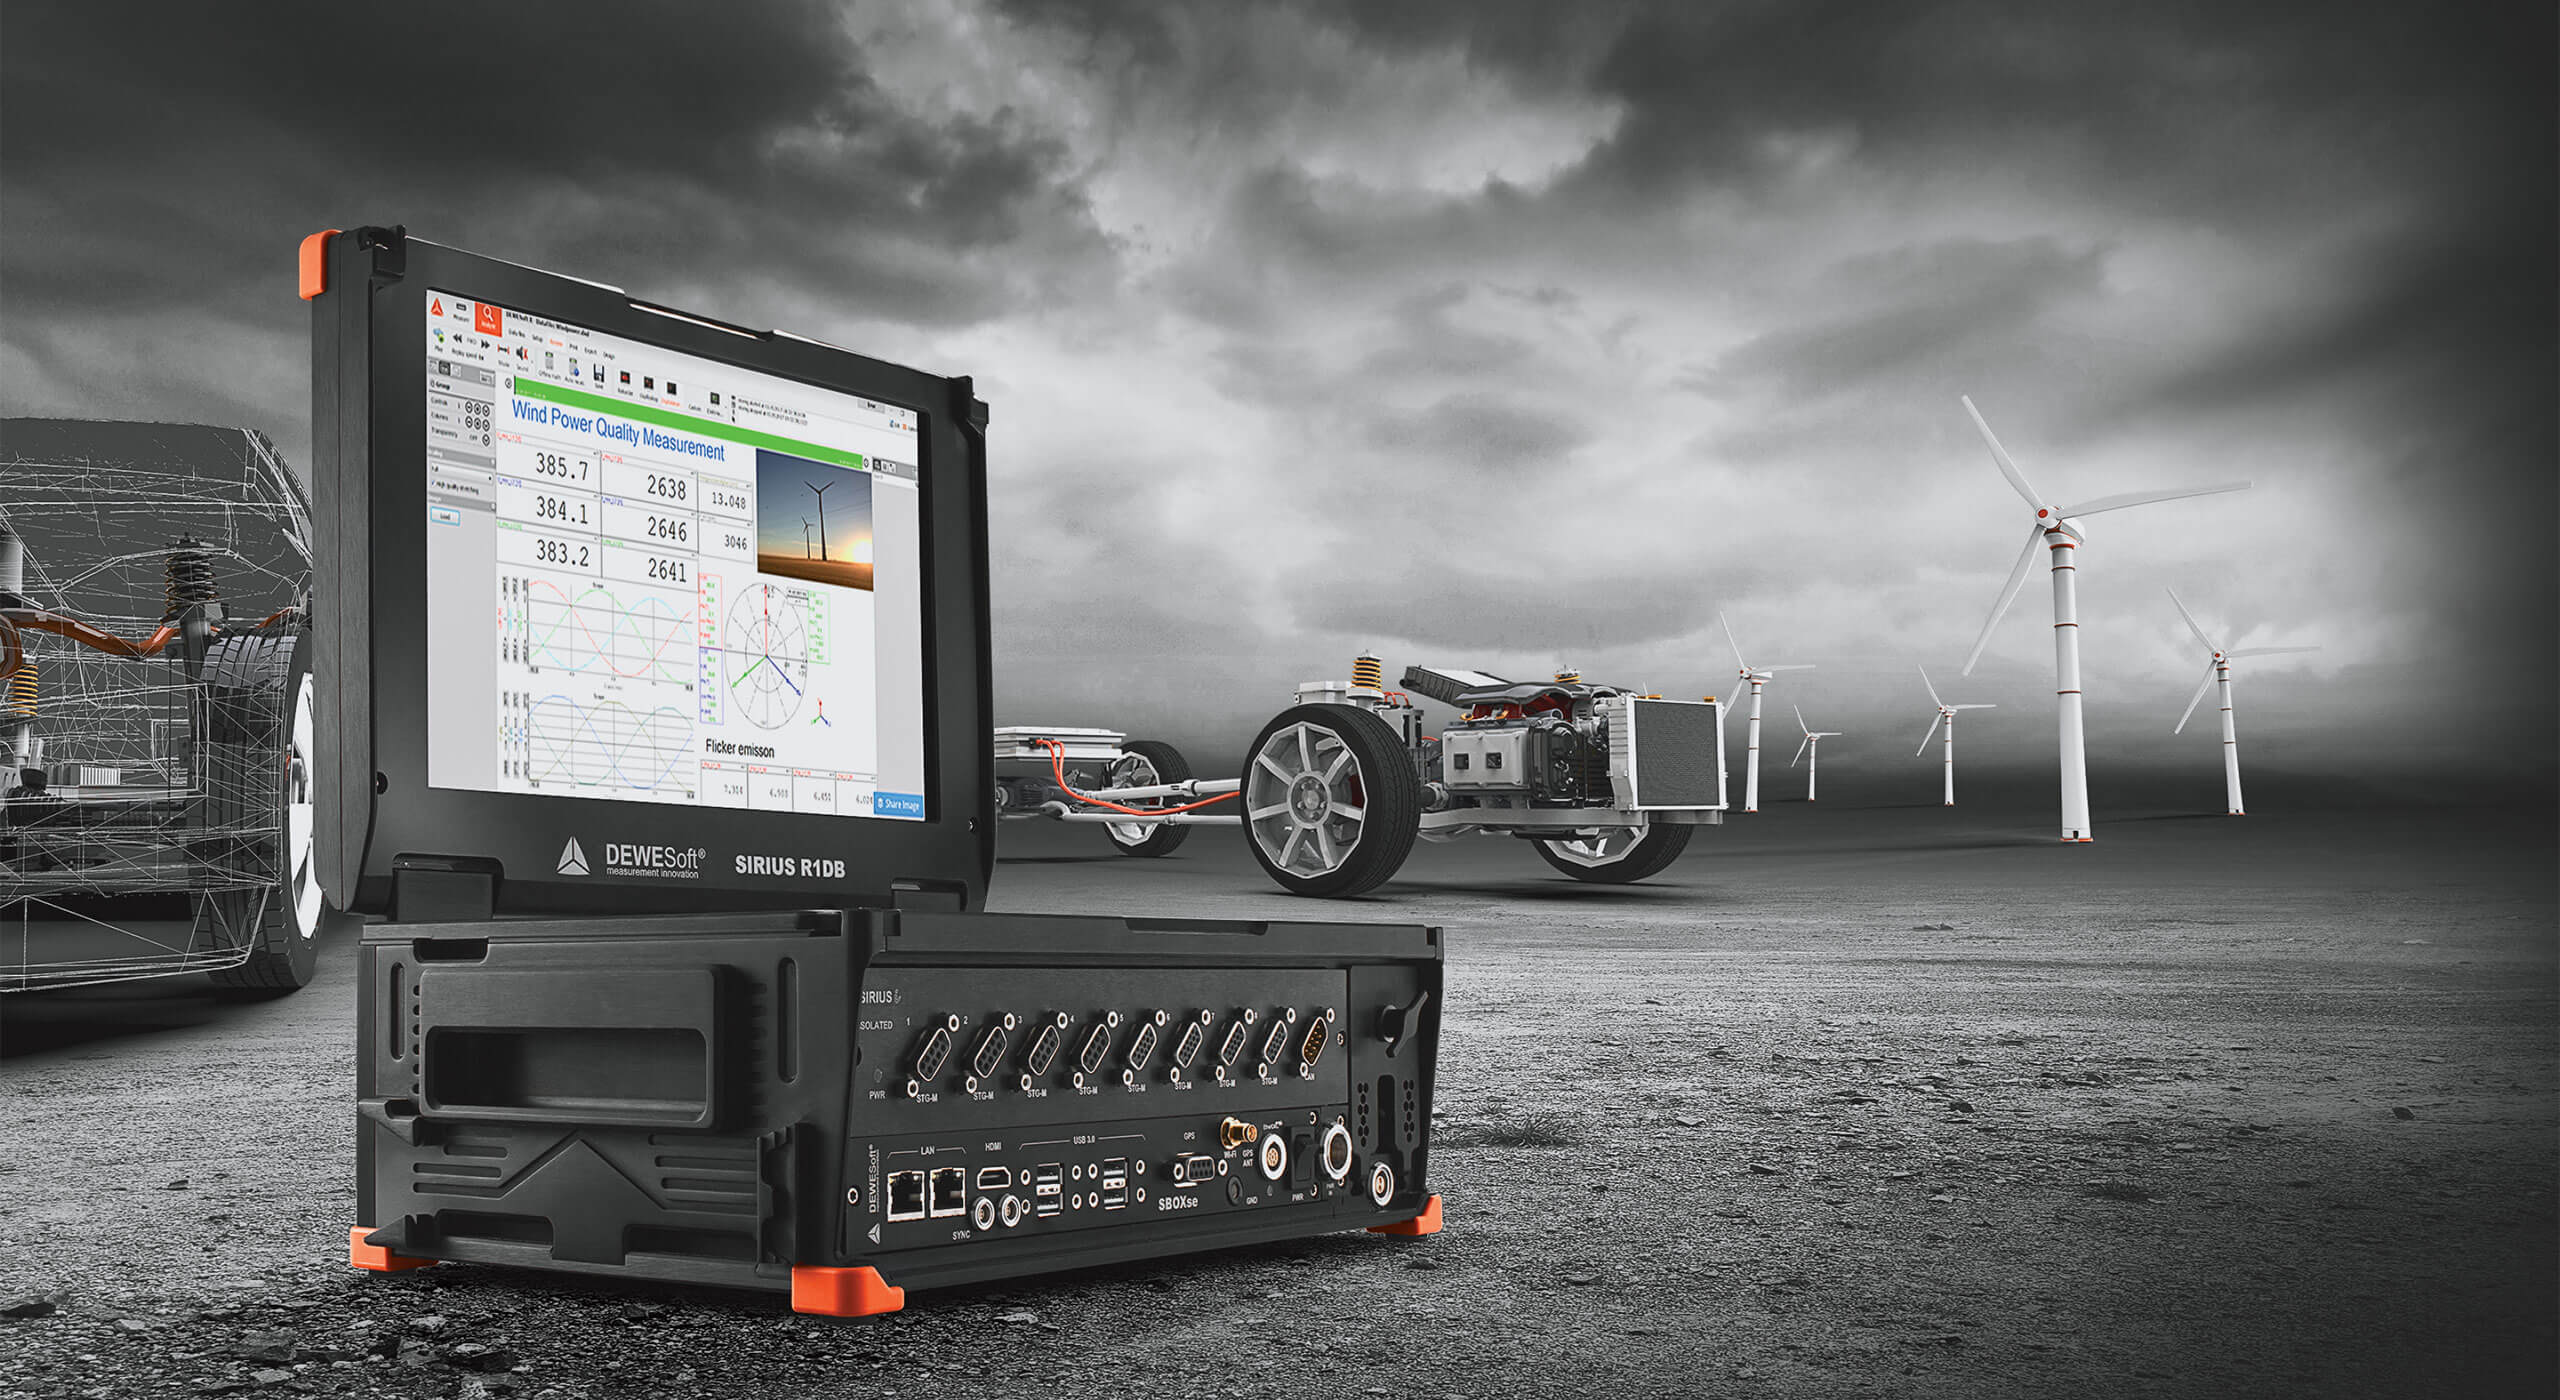 High-precision Power Quality Analyzer and Meter | Dewesoft